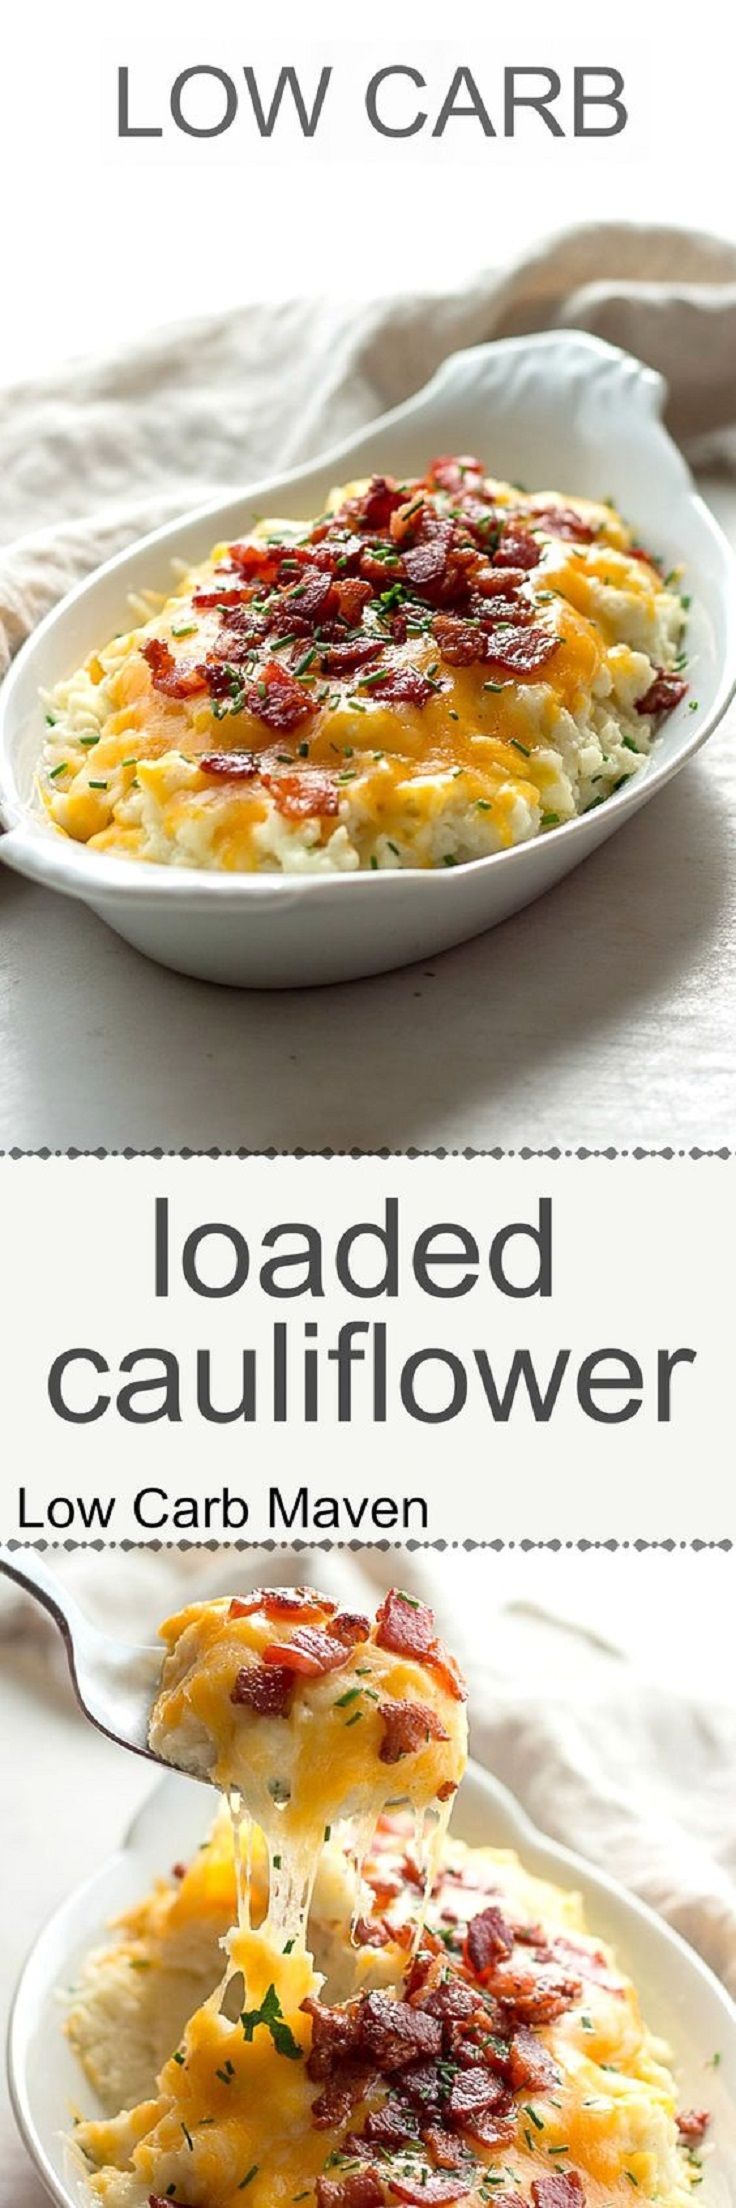 Loaded Carb Free Cauliflower - 13 Easy Low Carb Recipes – Healthy Breakfast, Lunch, Dinner and Dessert Ideas